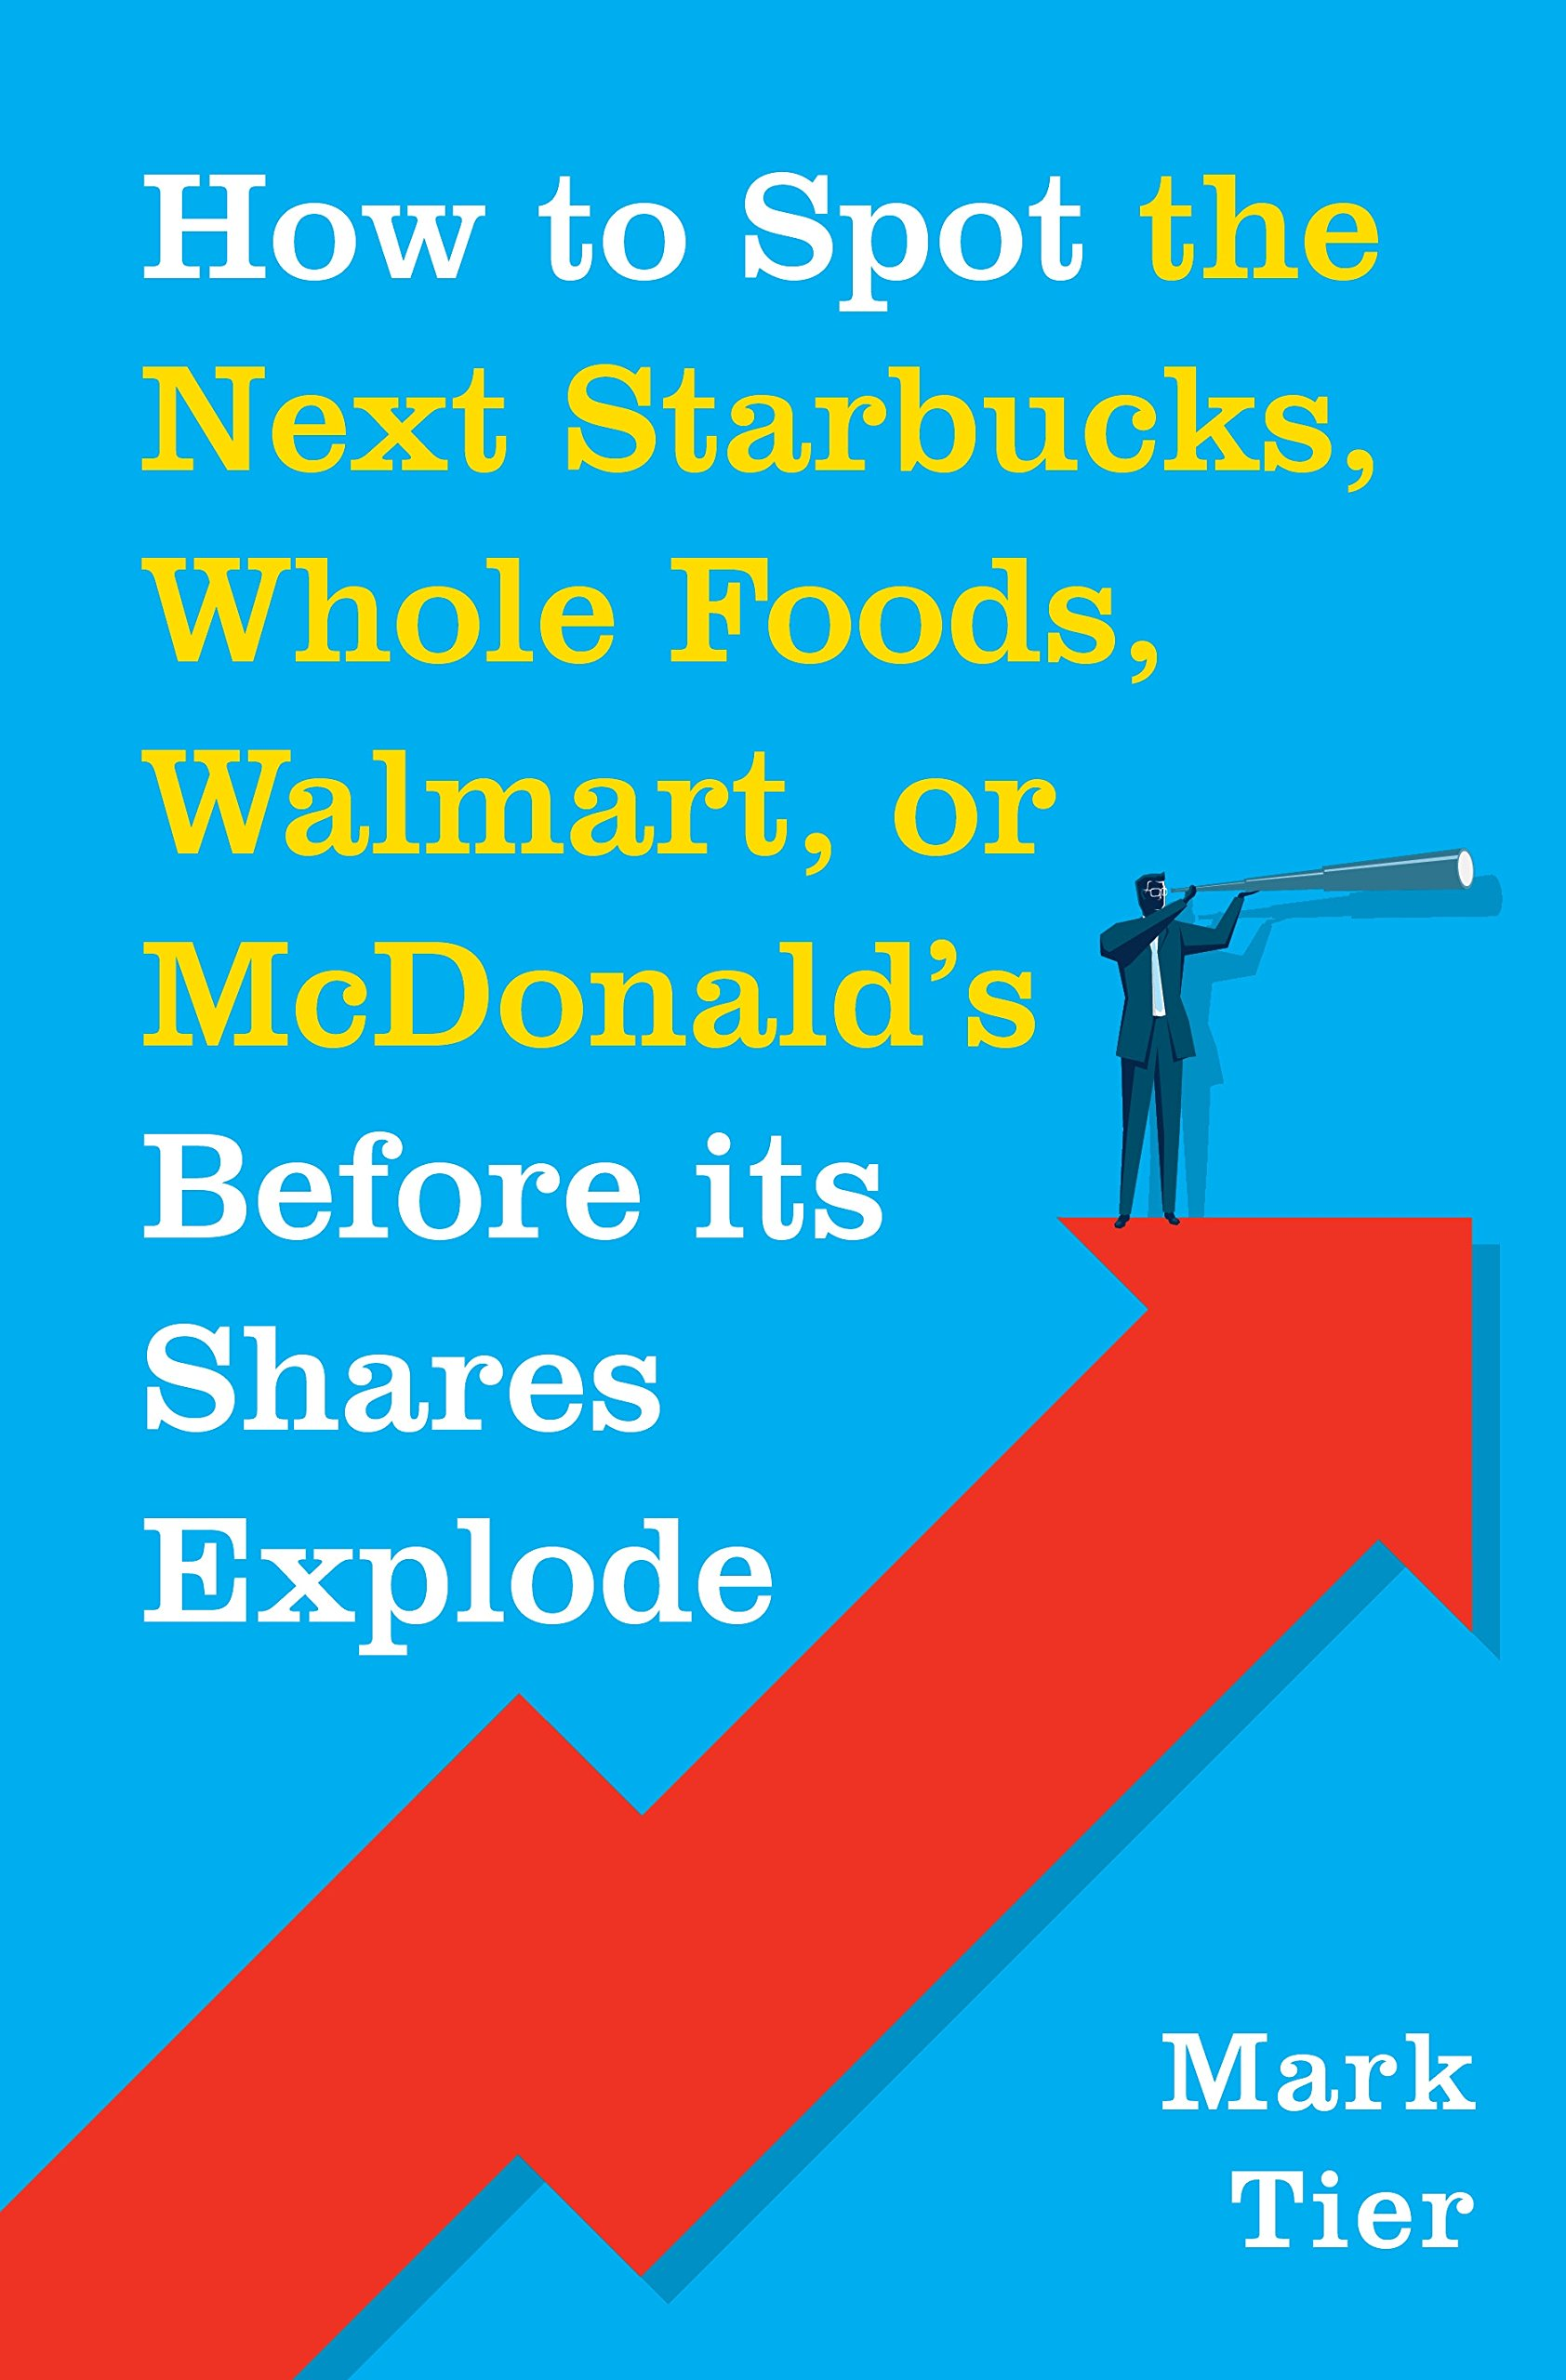 How to Spot the Next Starbucks, Whole Foods, Walmart, or Mcdonald's Before Its Shares Explode PDF